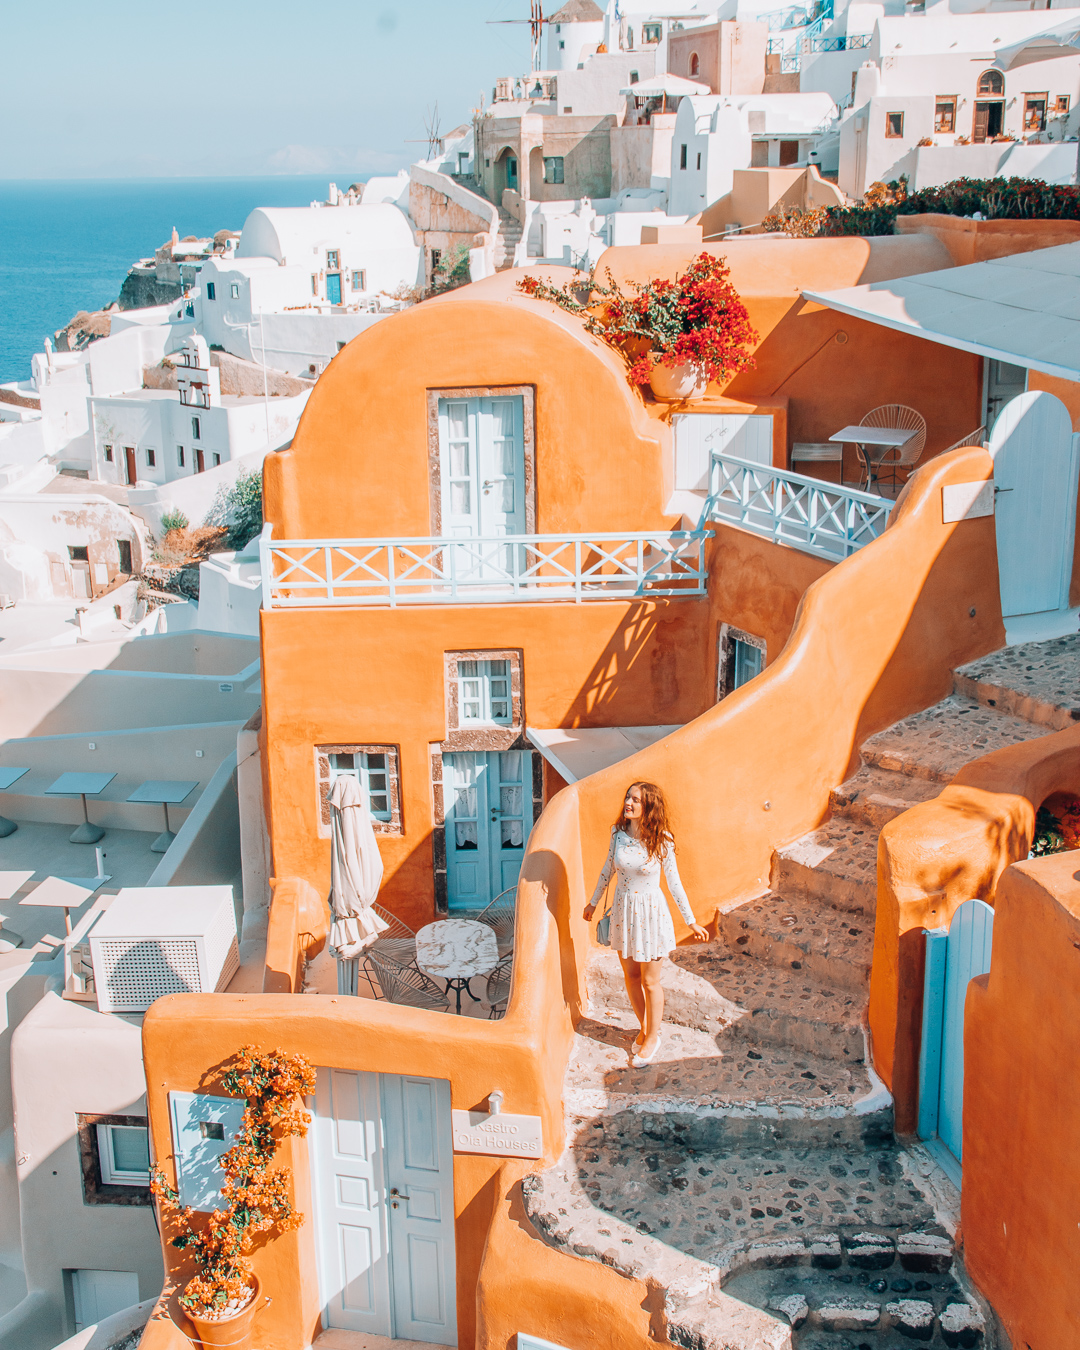 Kastro Oia Houses from above